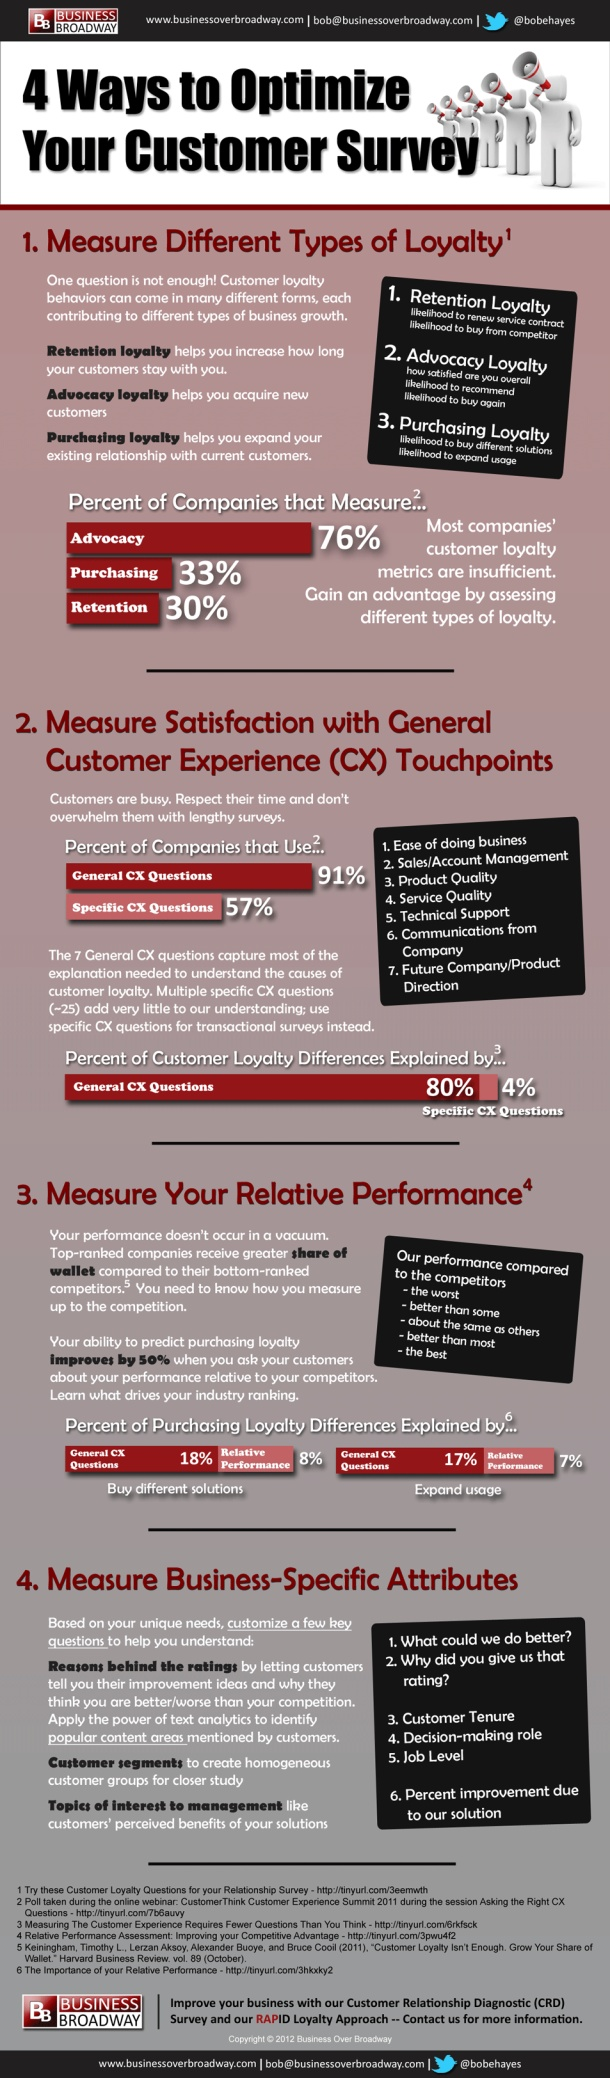 4 Ways To Optimize Your Customer Survey [INFOGRAPHIC]